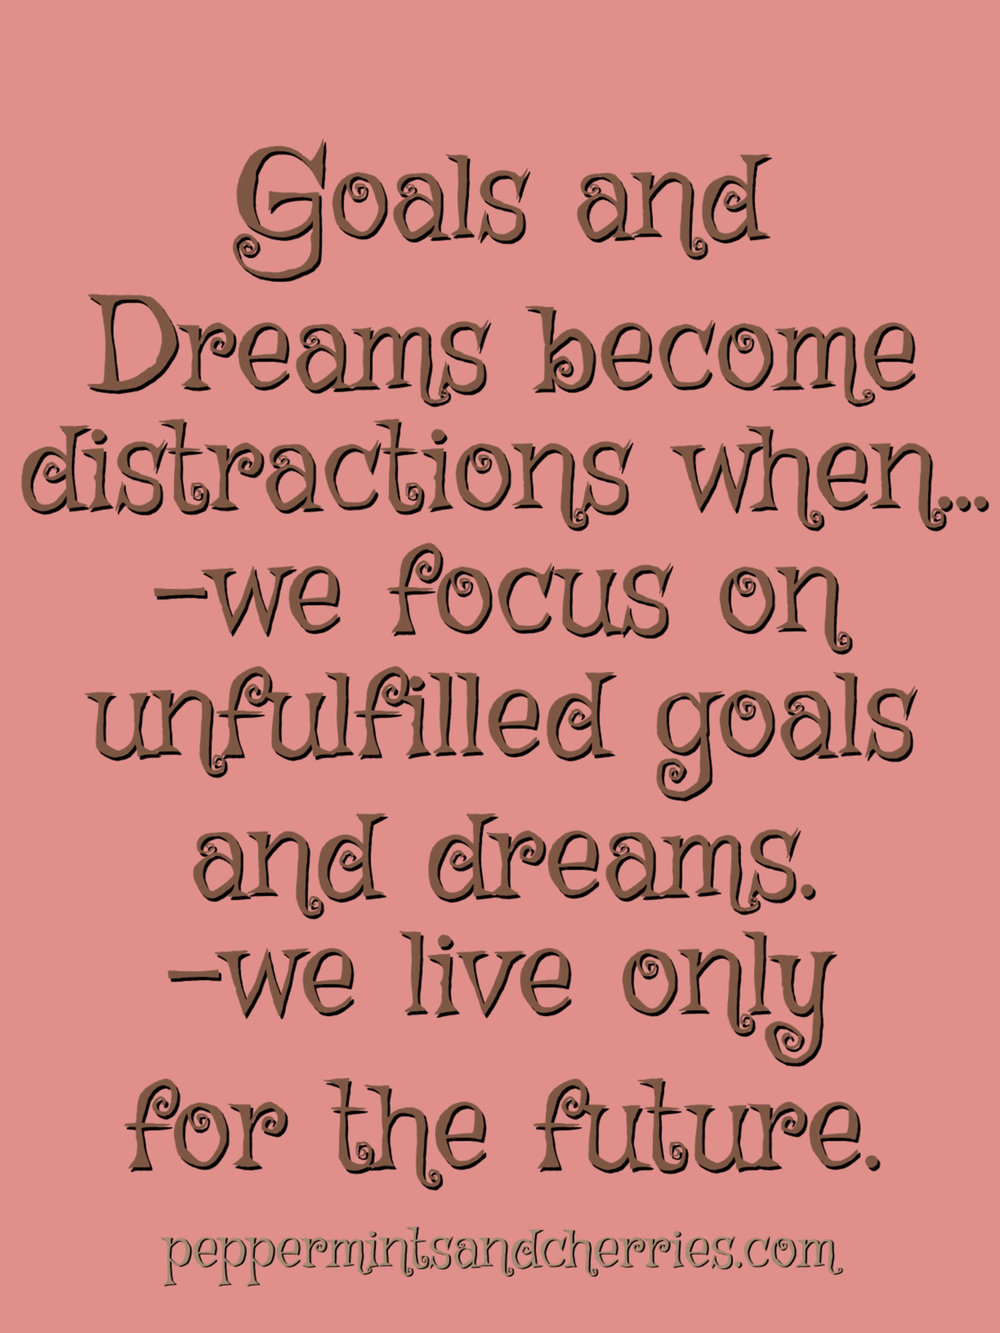 Goals and Dreams Become Distractions When...